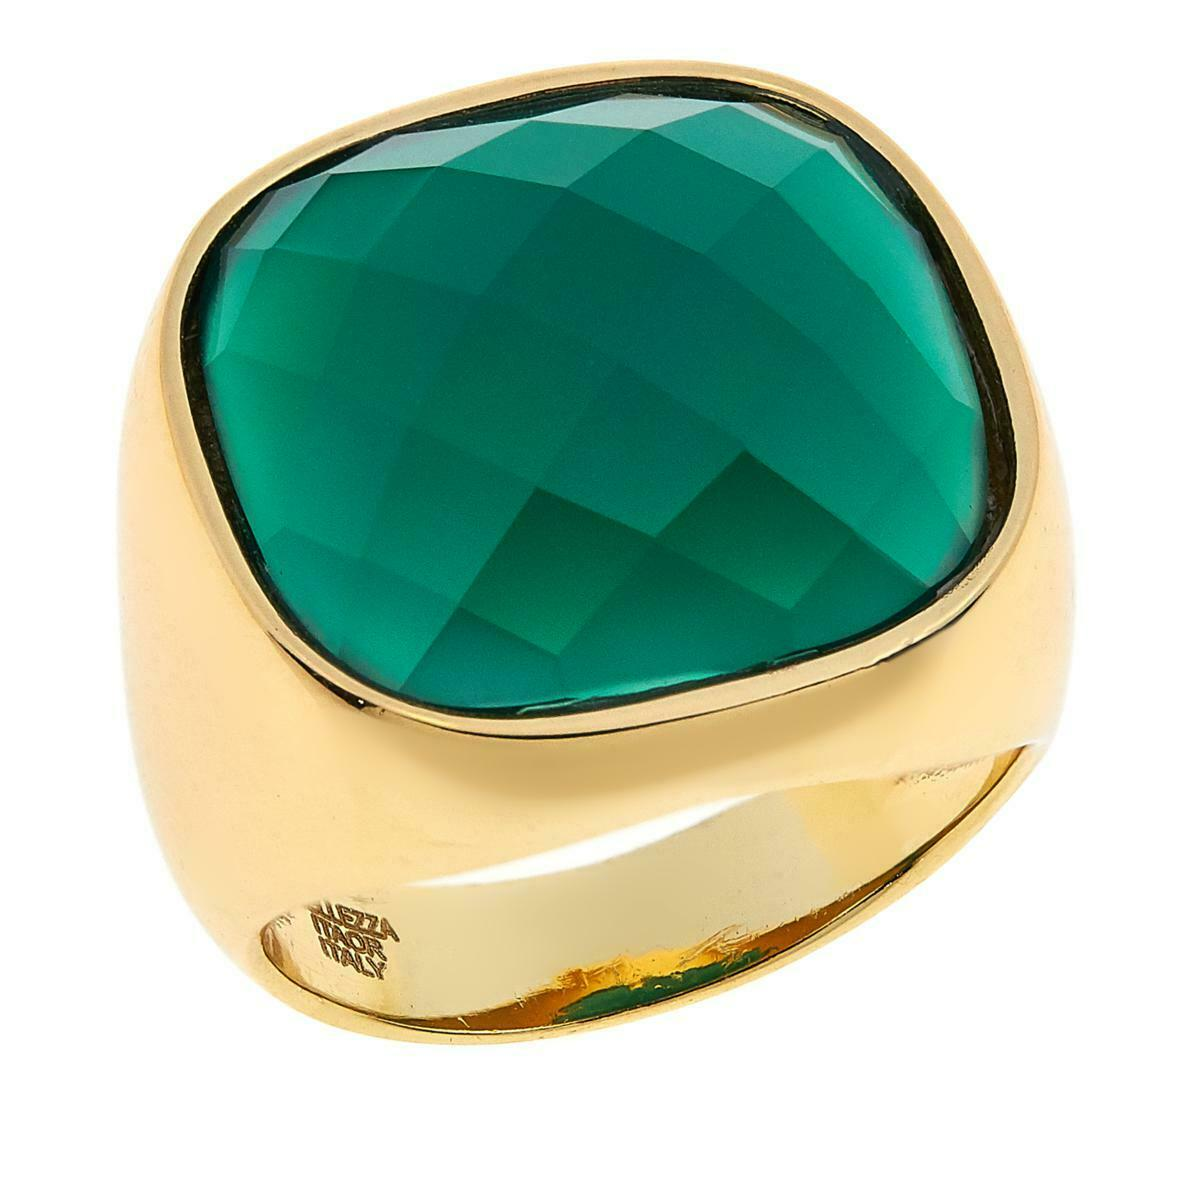 BELLEZZA GREEN AGATE YELLOW BRONZE CUSHION SOLITAIRE POLISHED RING SIZE 8 HSN